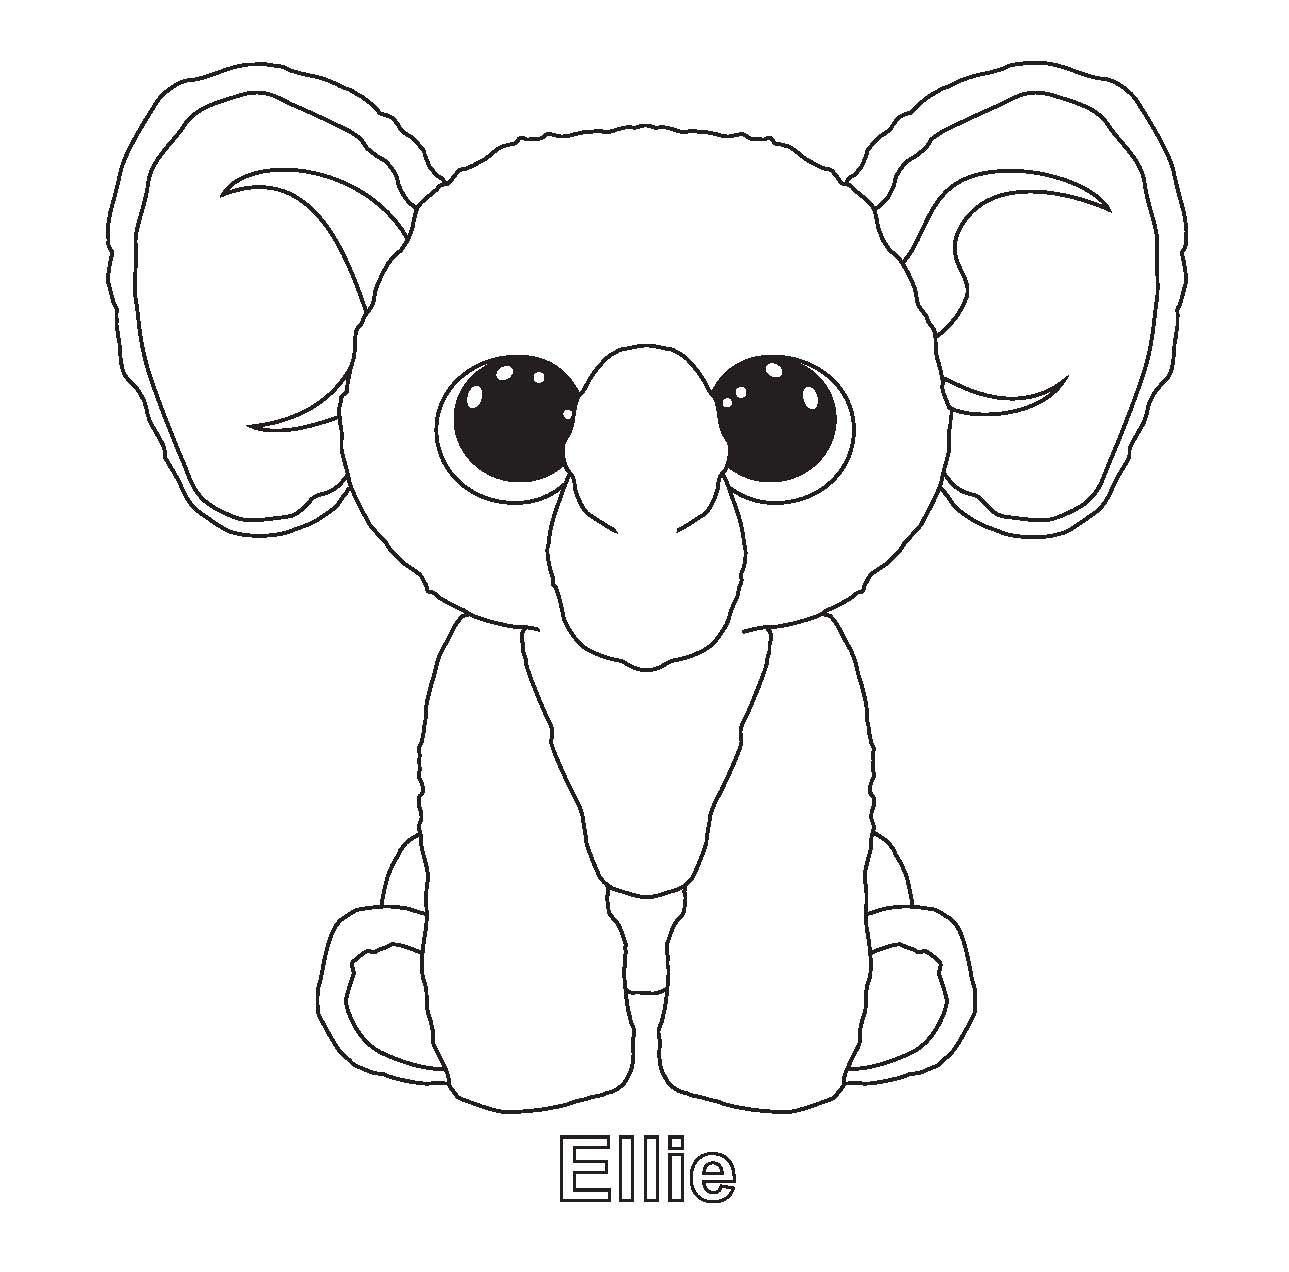 Pin By Marcie Garrison On Coloring Fun Beanie Boo Birthdays Beanie Boo Party Pictures Of Beanie Boos